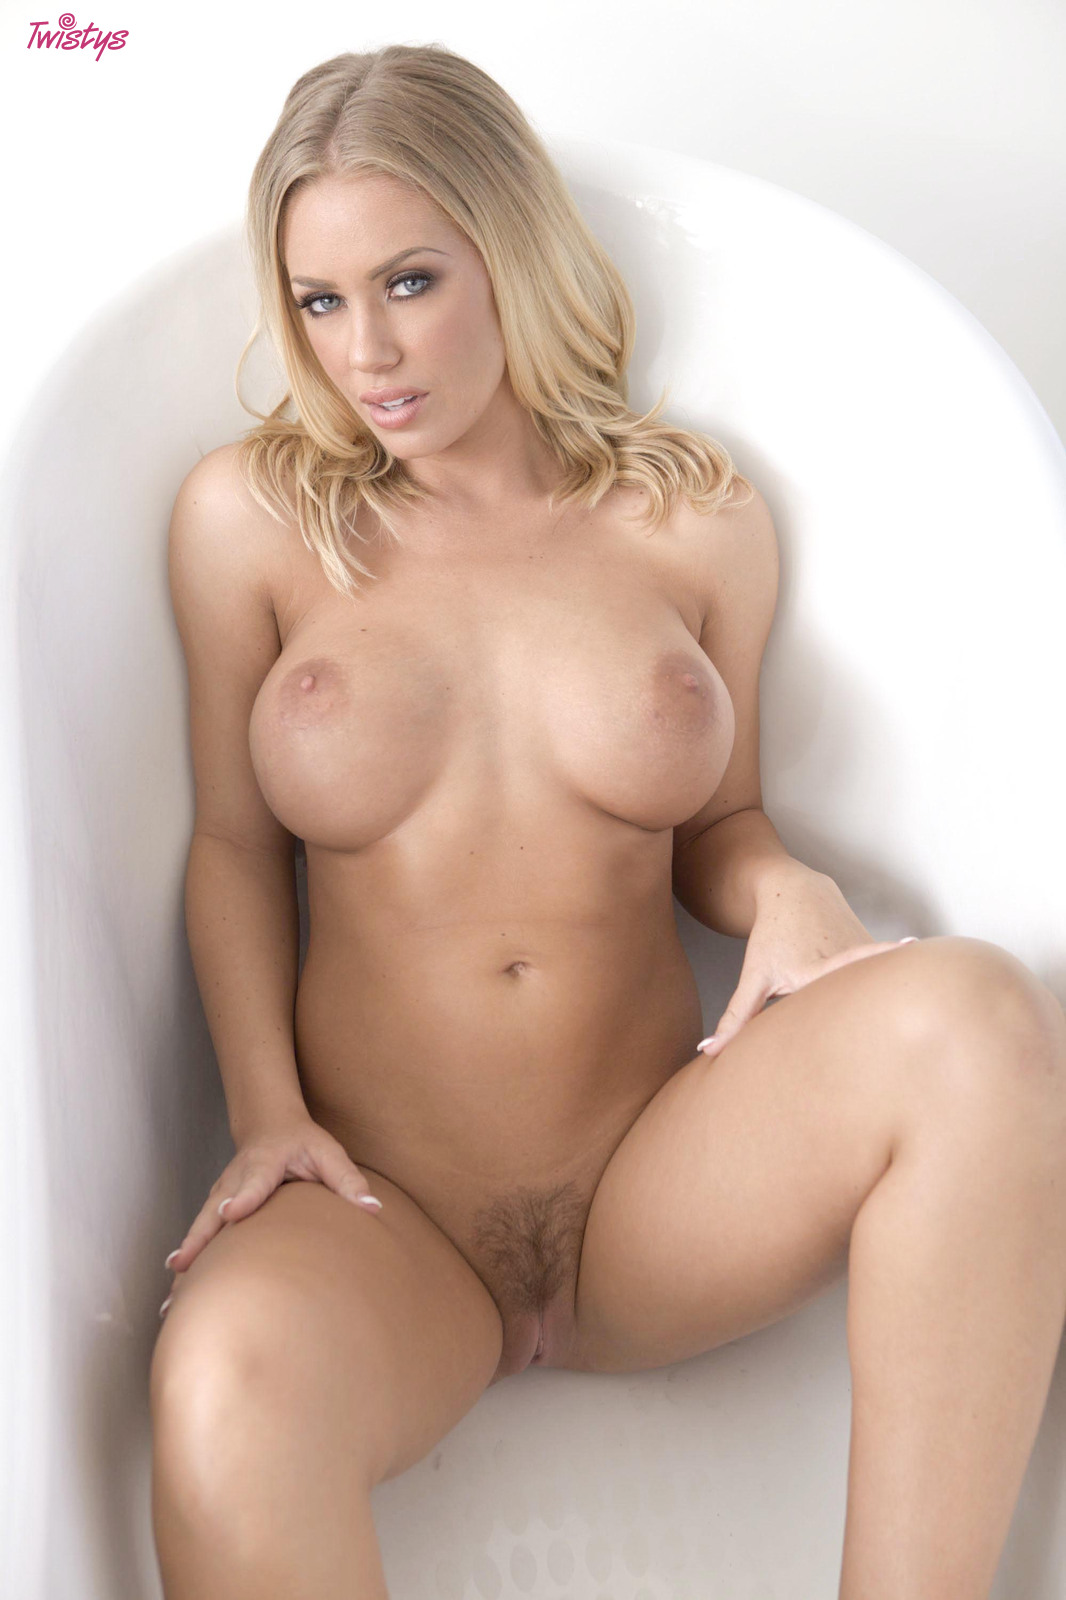 Excited too Female porn star nicole aniston final, sorry